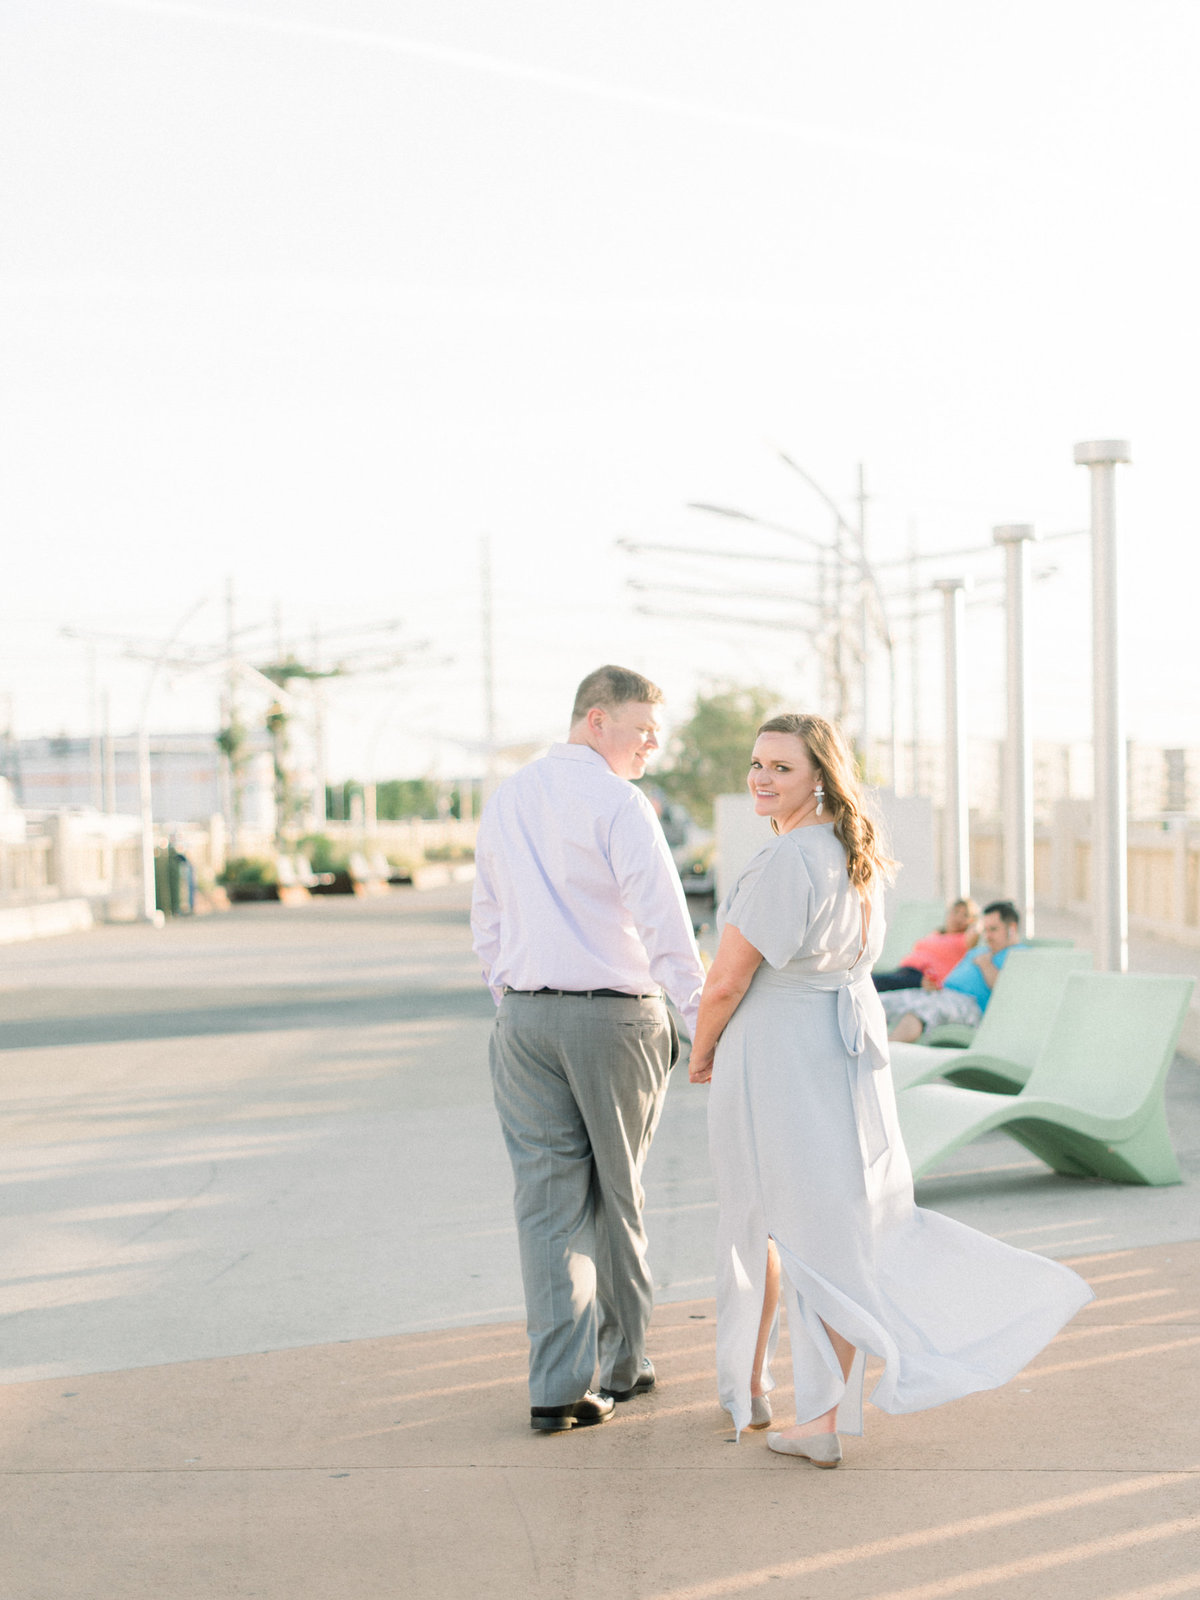 Courtney Hanson Photography - Downtown Dallas Engagement Session-7416